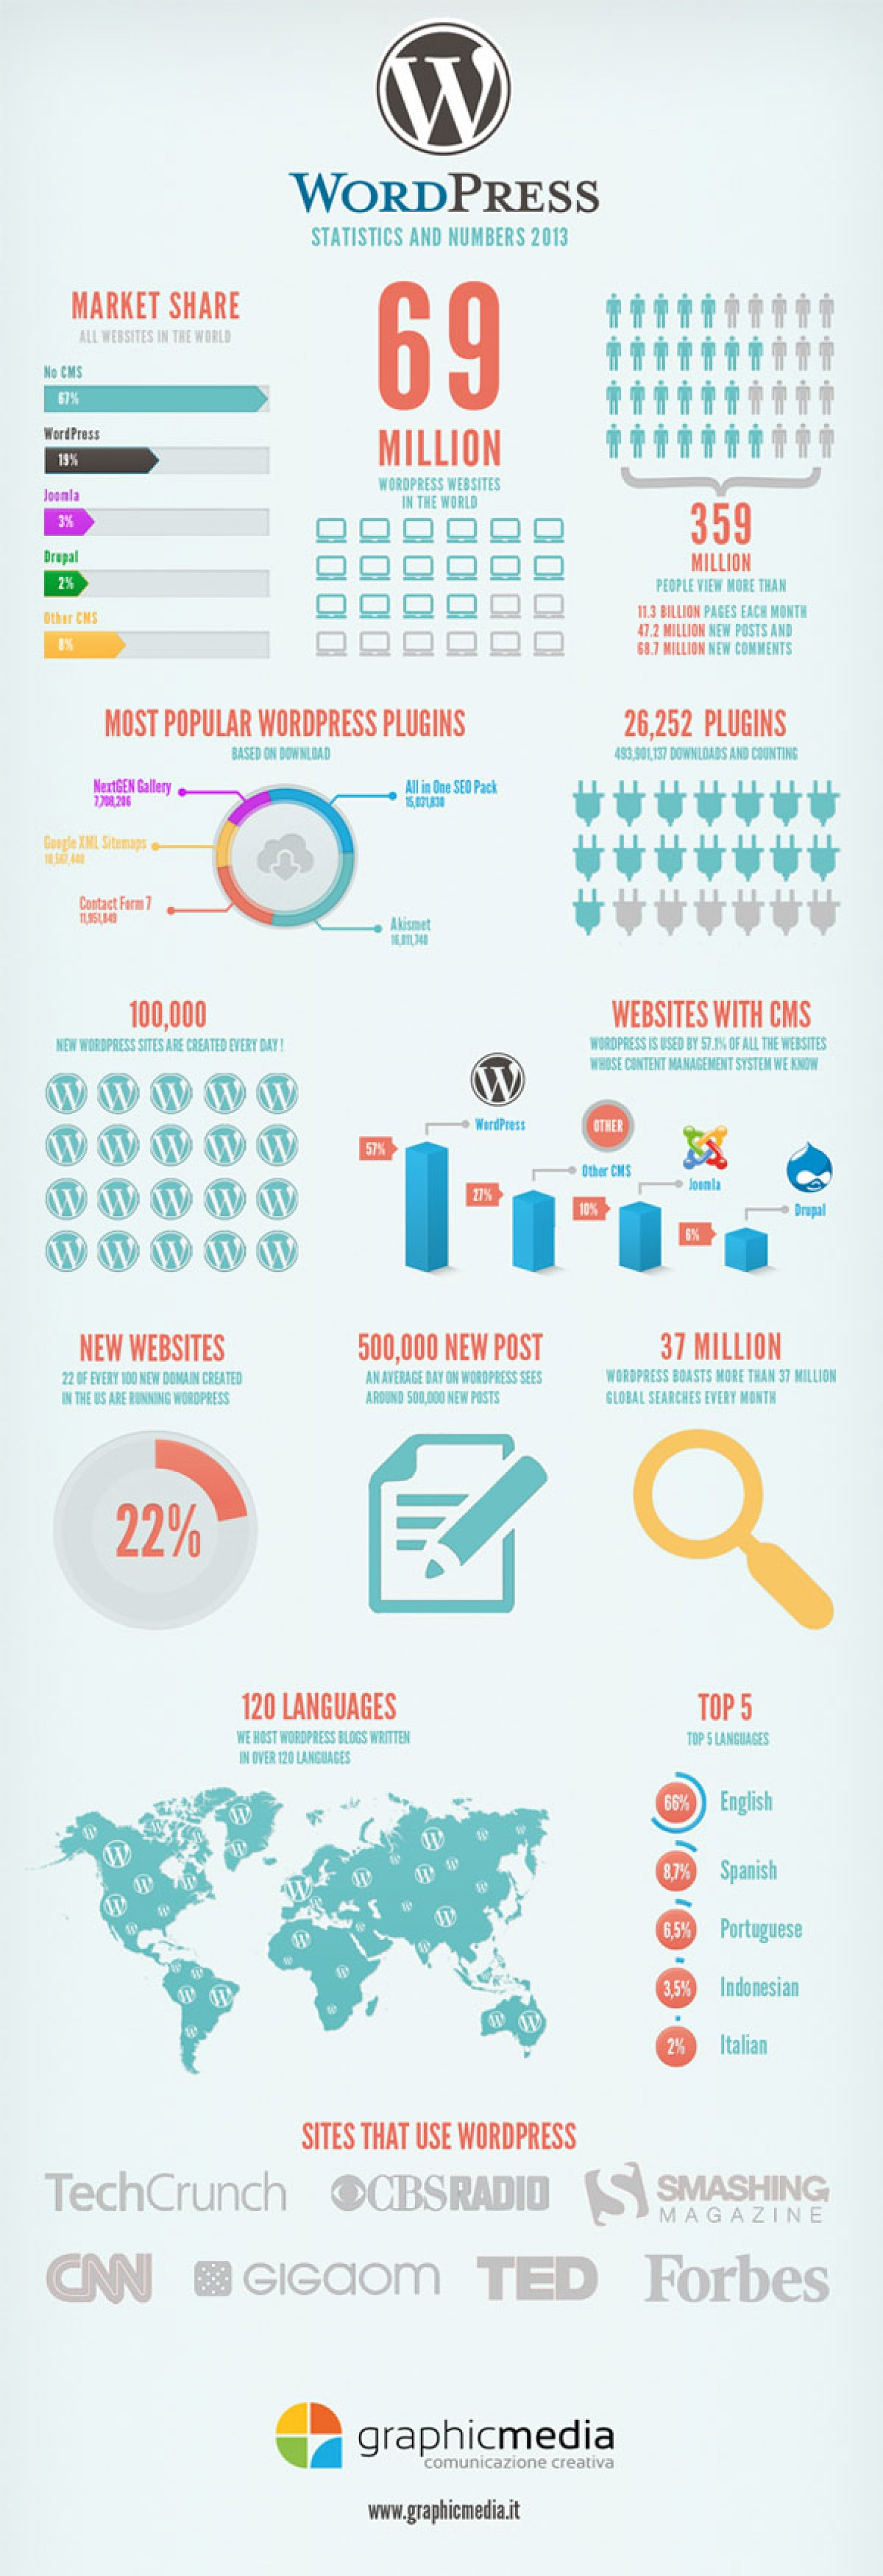 18. WordPress Statistics and Numbers 2013